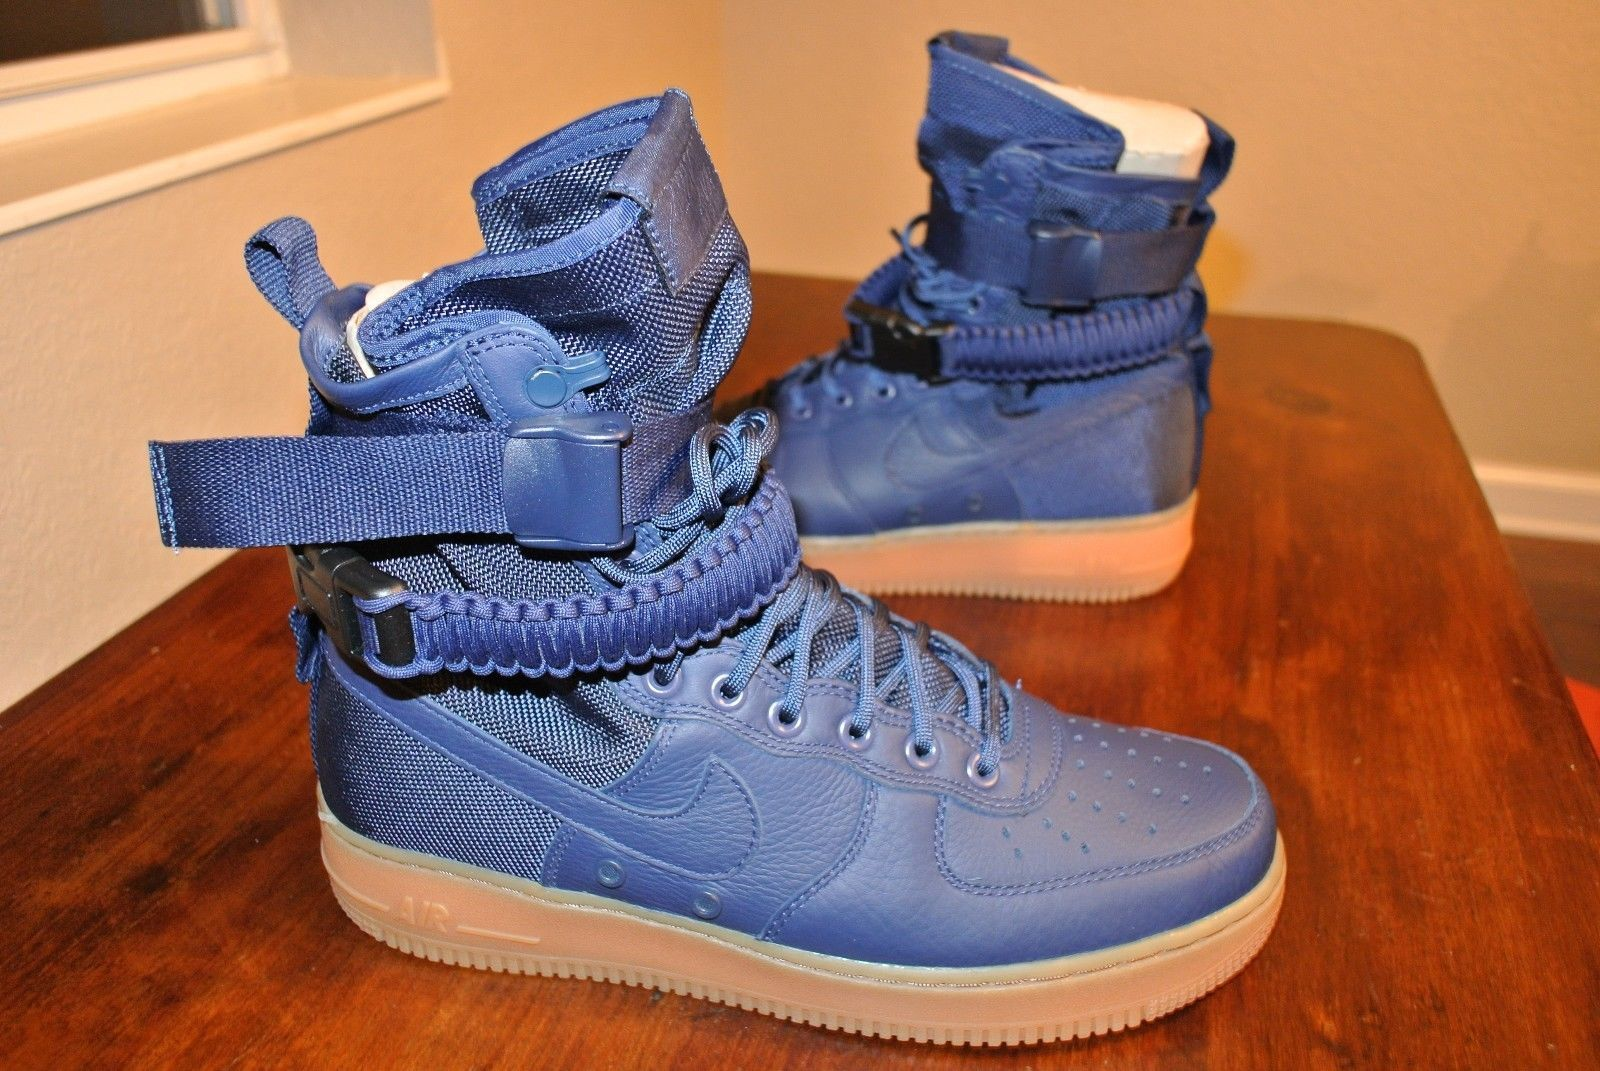 new product 57d9a 5c1bf 57. 57. Previous. NIKE SF AF1 MIDNIGHT NAVY SPECIAL FIELD 864024 400 US  MENS SHOE SIZE 9